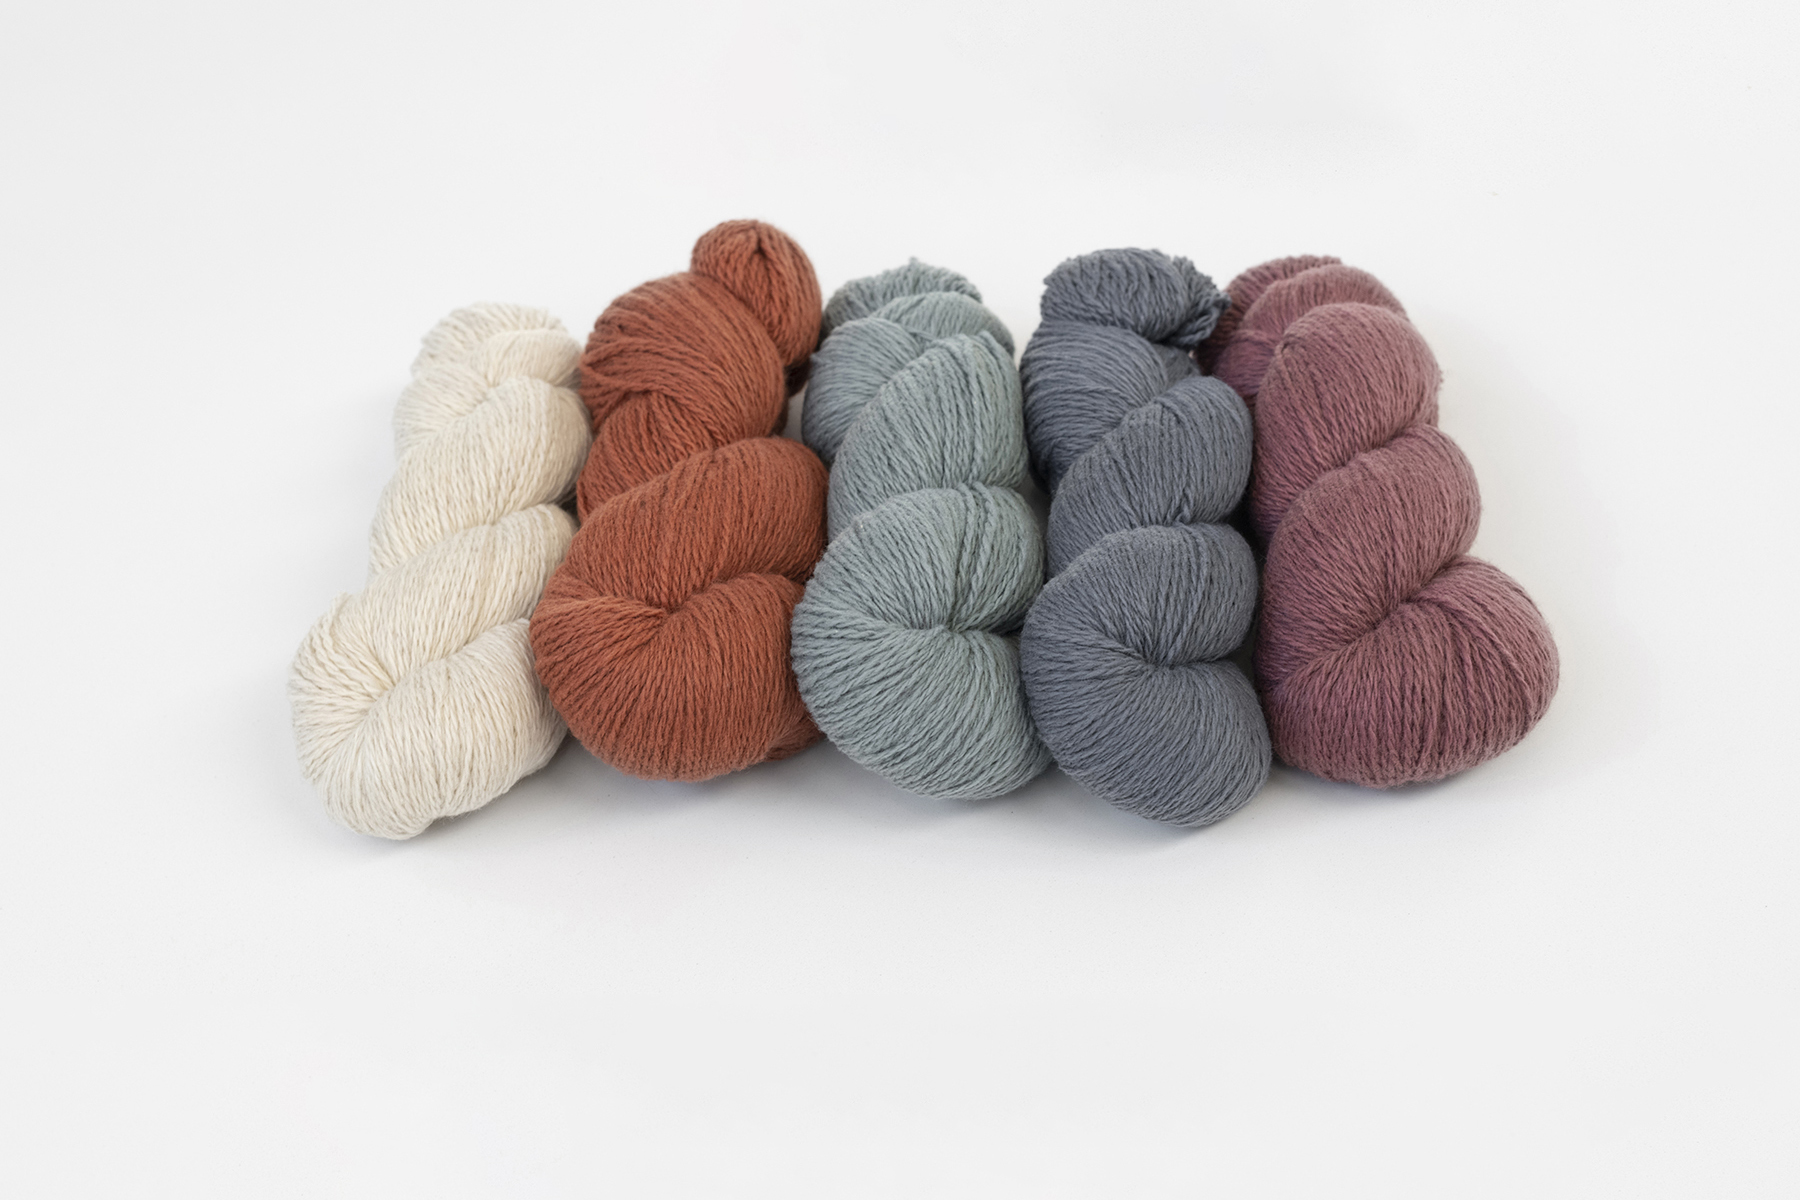 mYak Tibetan Cloud Yarn